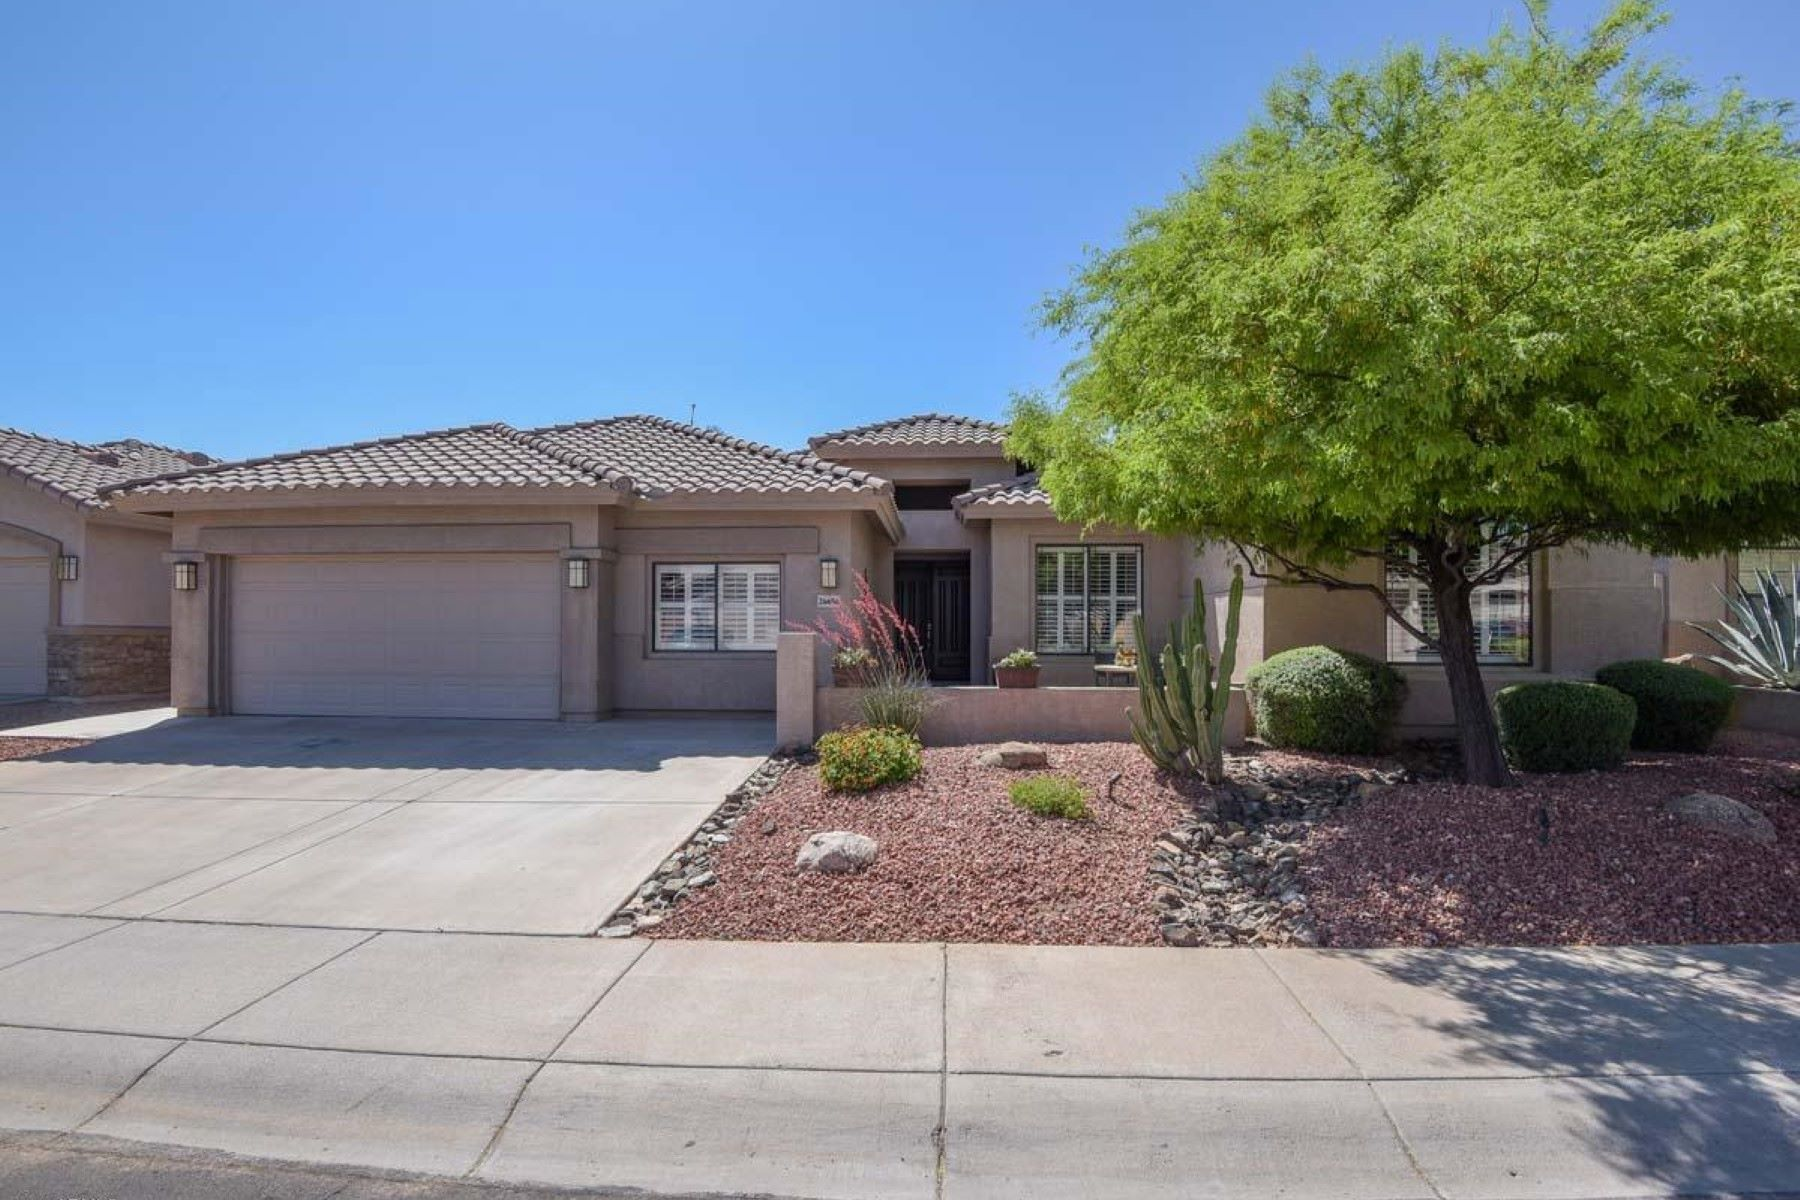 Single Family Home for Sale at Remodeled Tatum Highlands beauty 26656 N 45th Pl Cave Creek, Arizona, 85331 United States